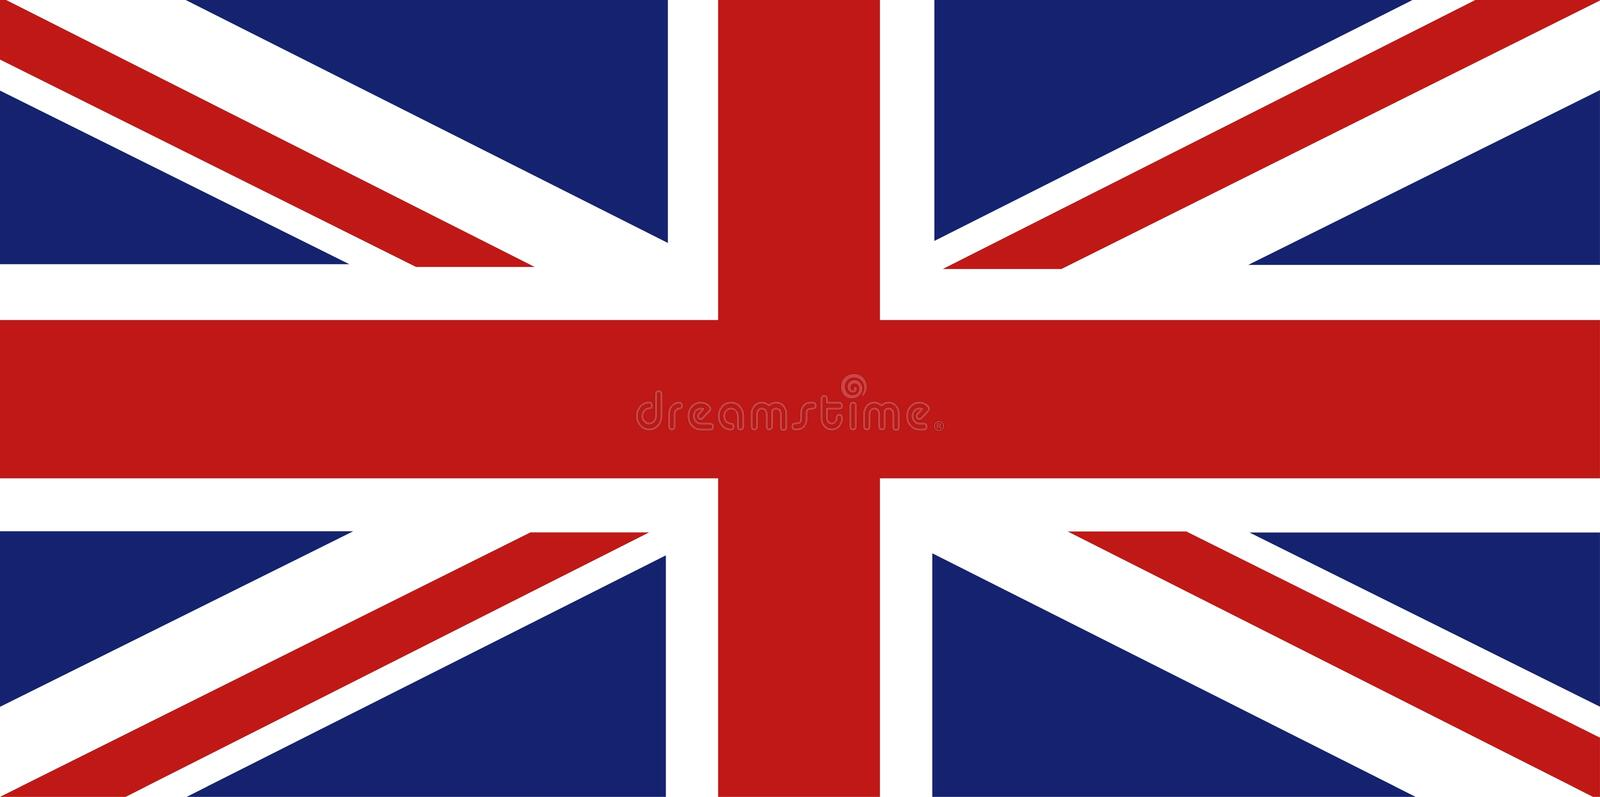 Union Jack illustration de vecteur